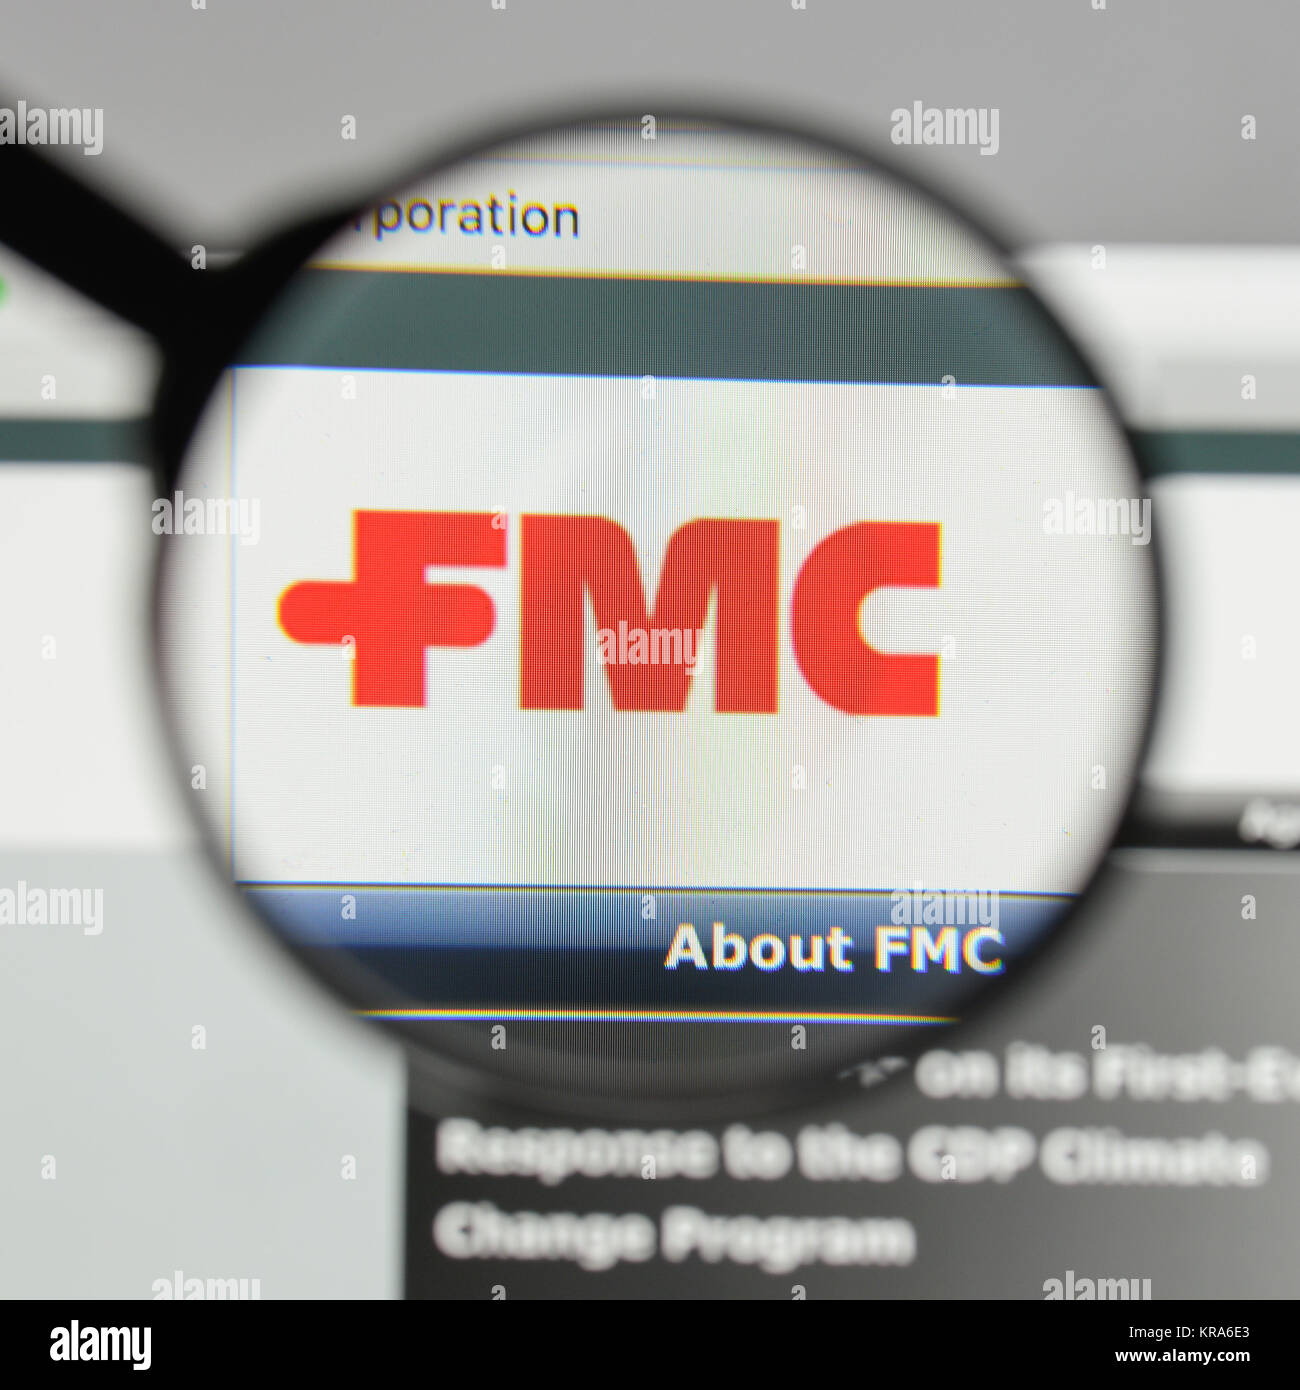 Milan, Italy - August 10, 2017: FMC logo on the website homepage. - Stock Image